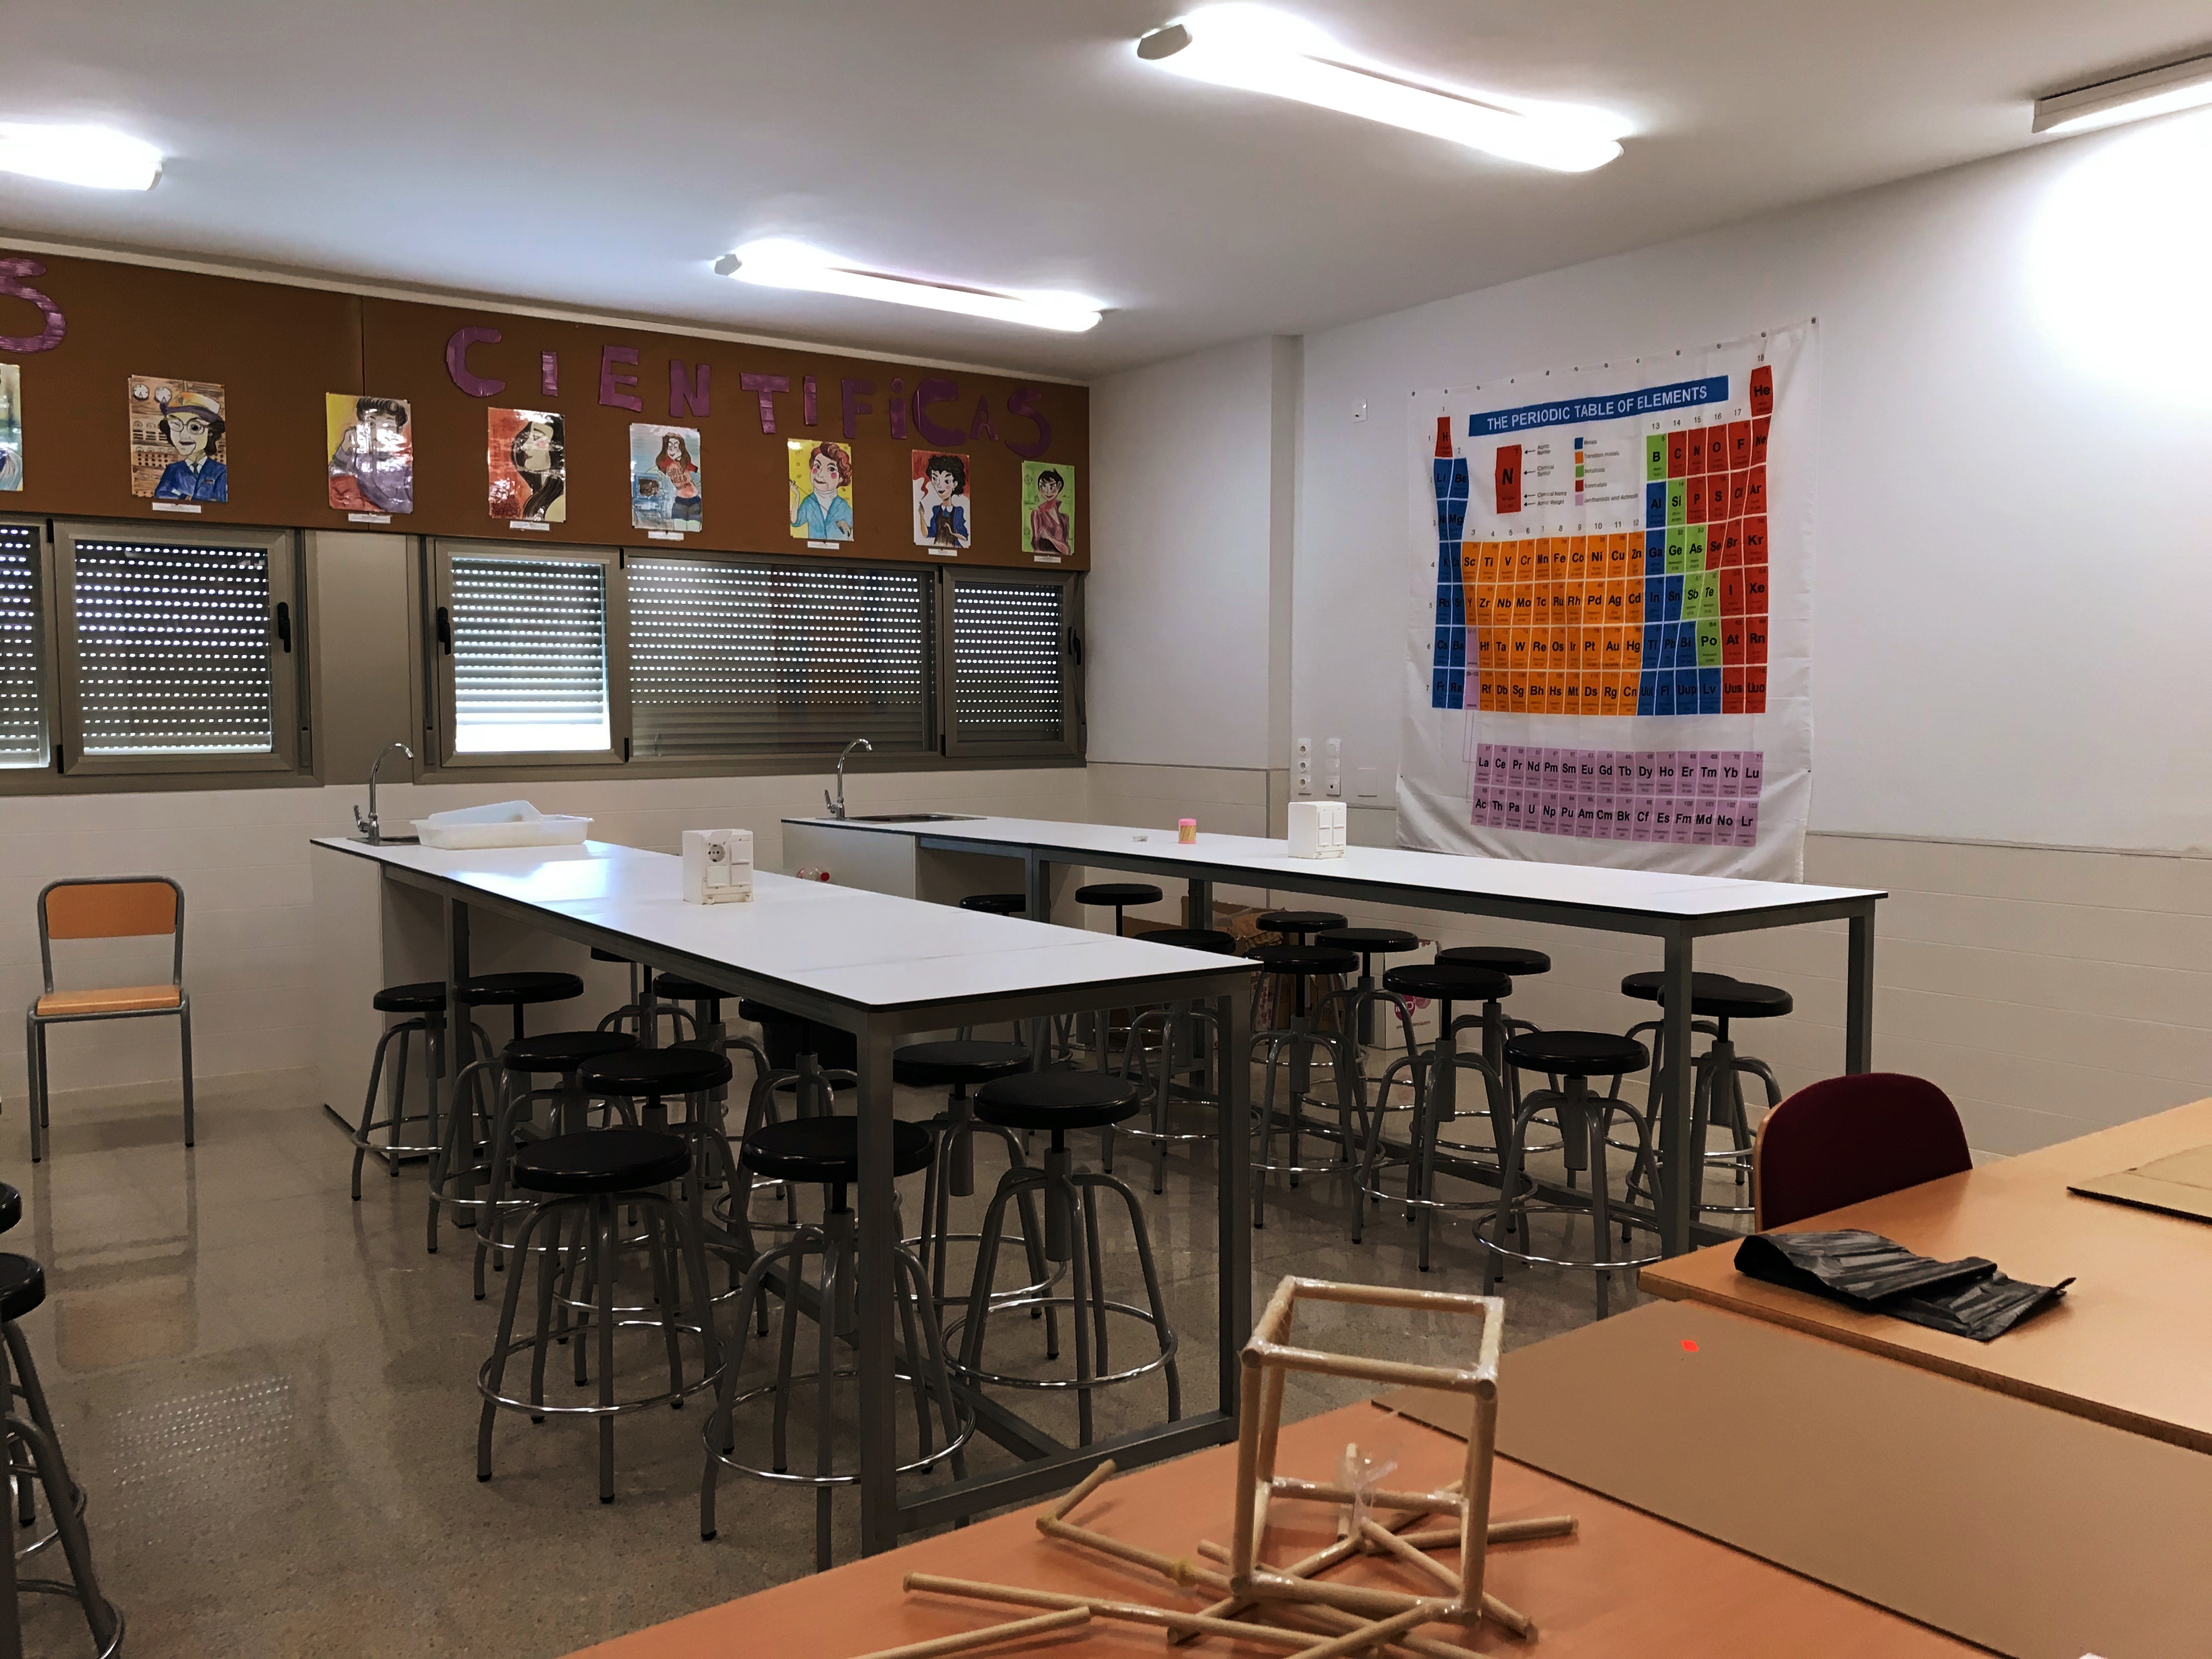 Laboratorio secundaria